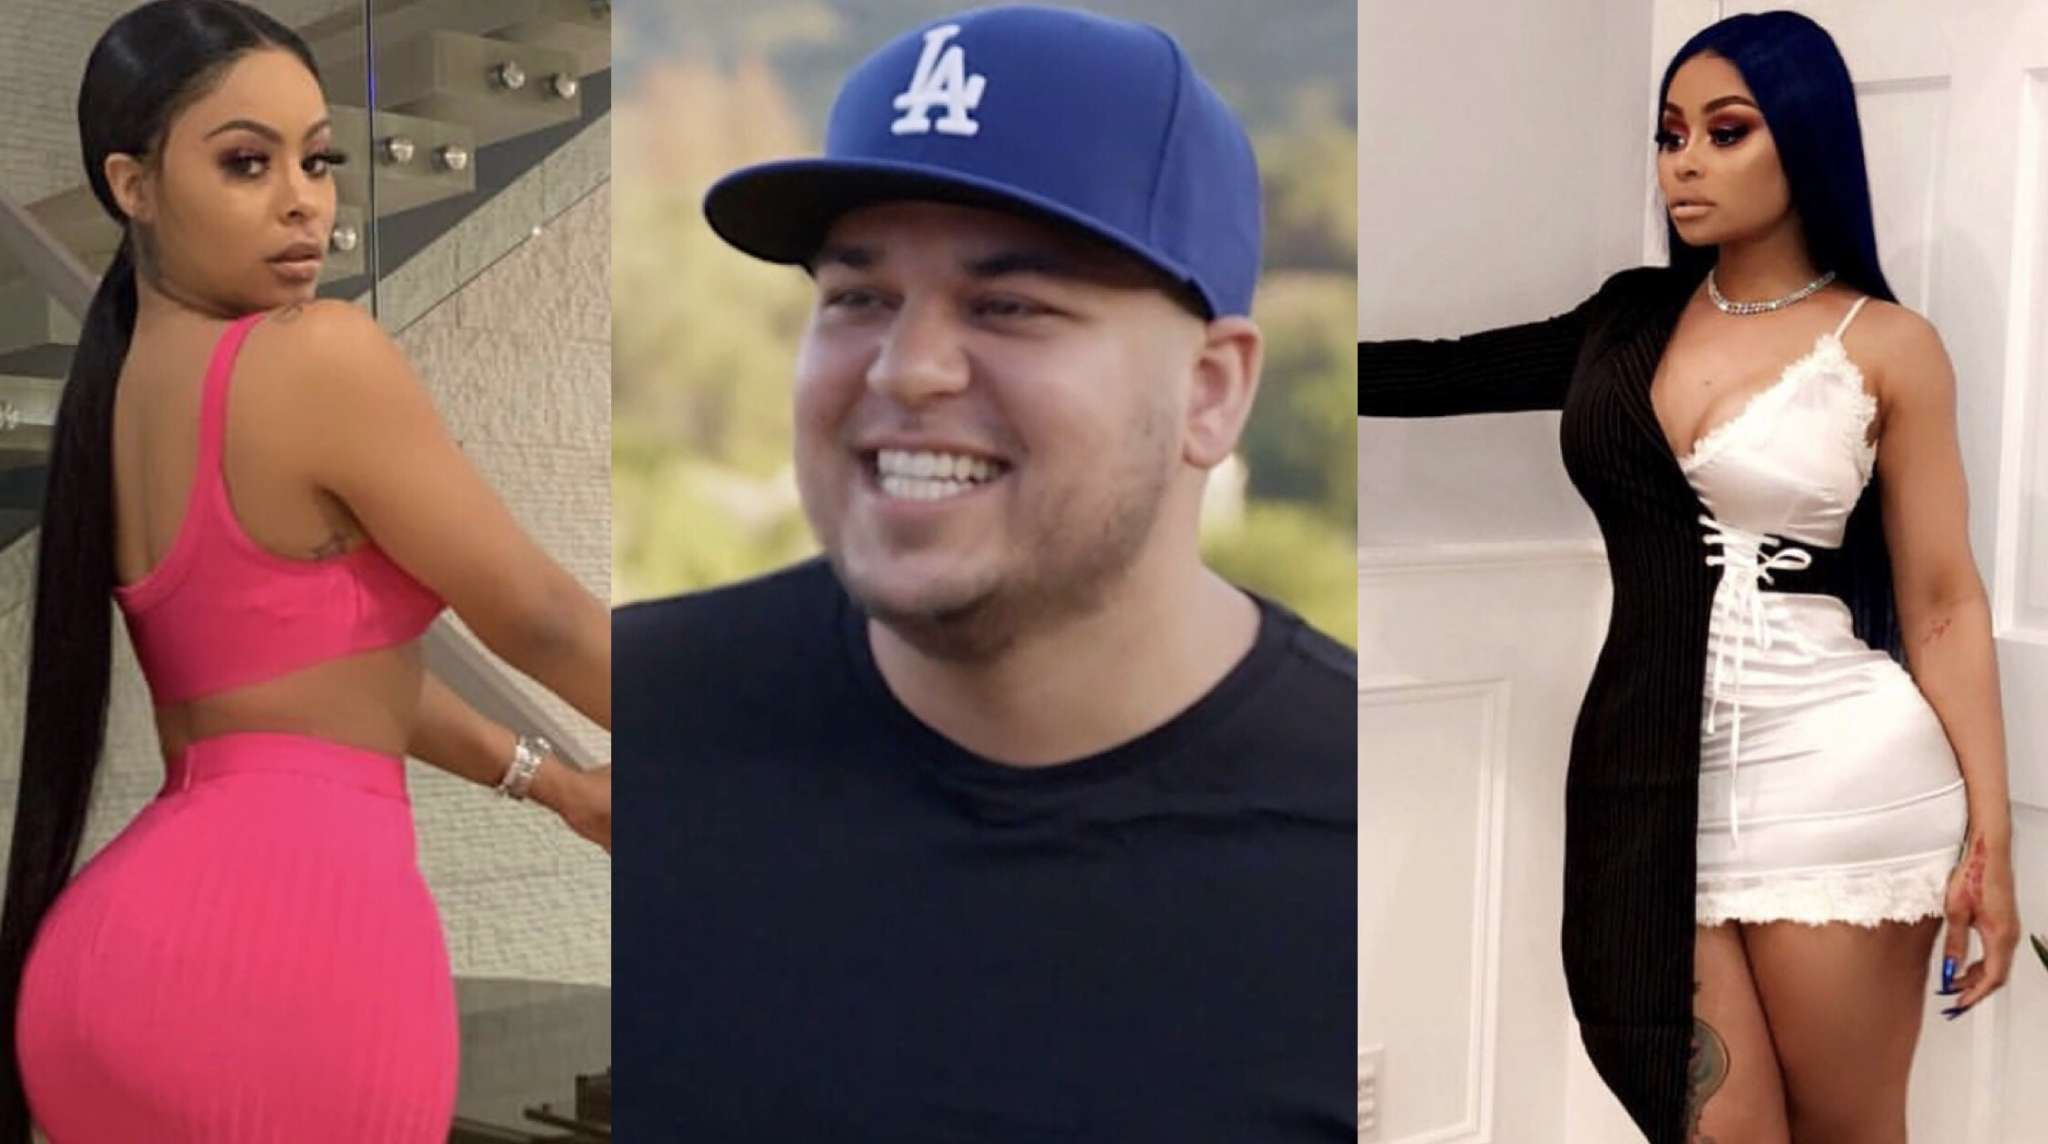 Rob Kardashian Shares A Video With Alexis Skyy And Has A Message For Fans Amidst Blac Chyna's Alleged Feud With The Woman